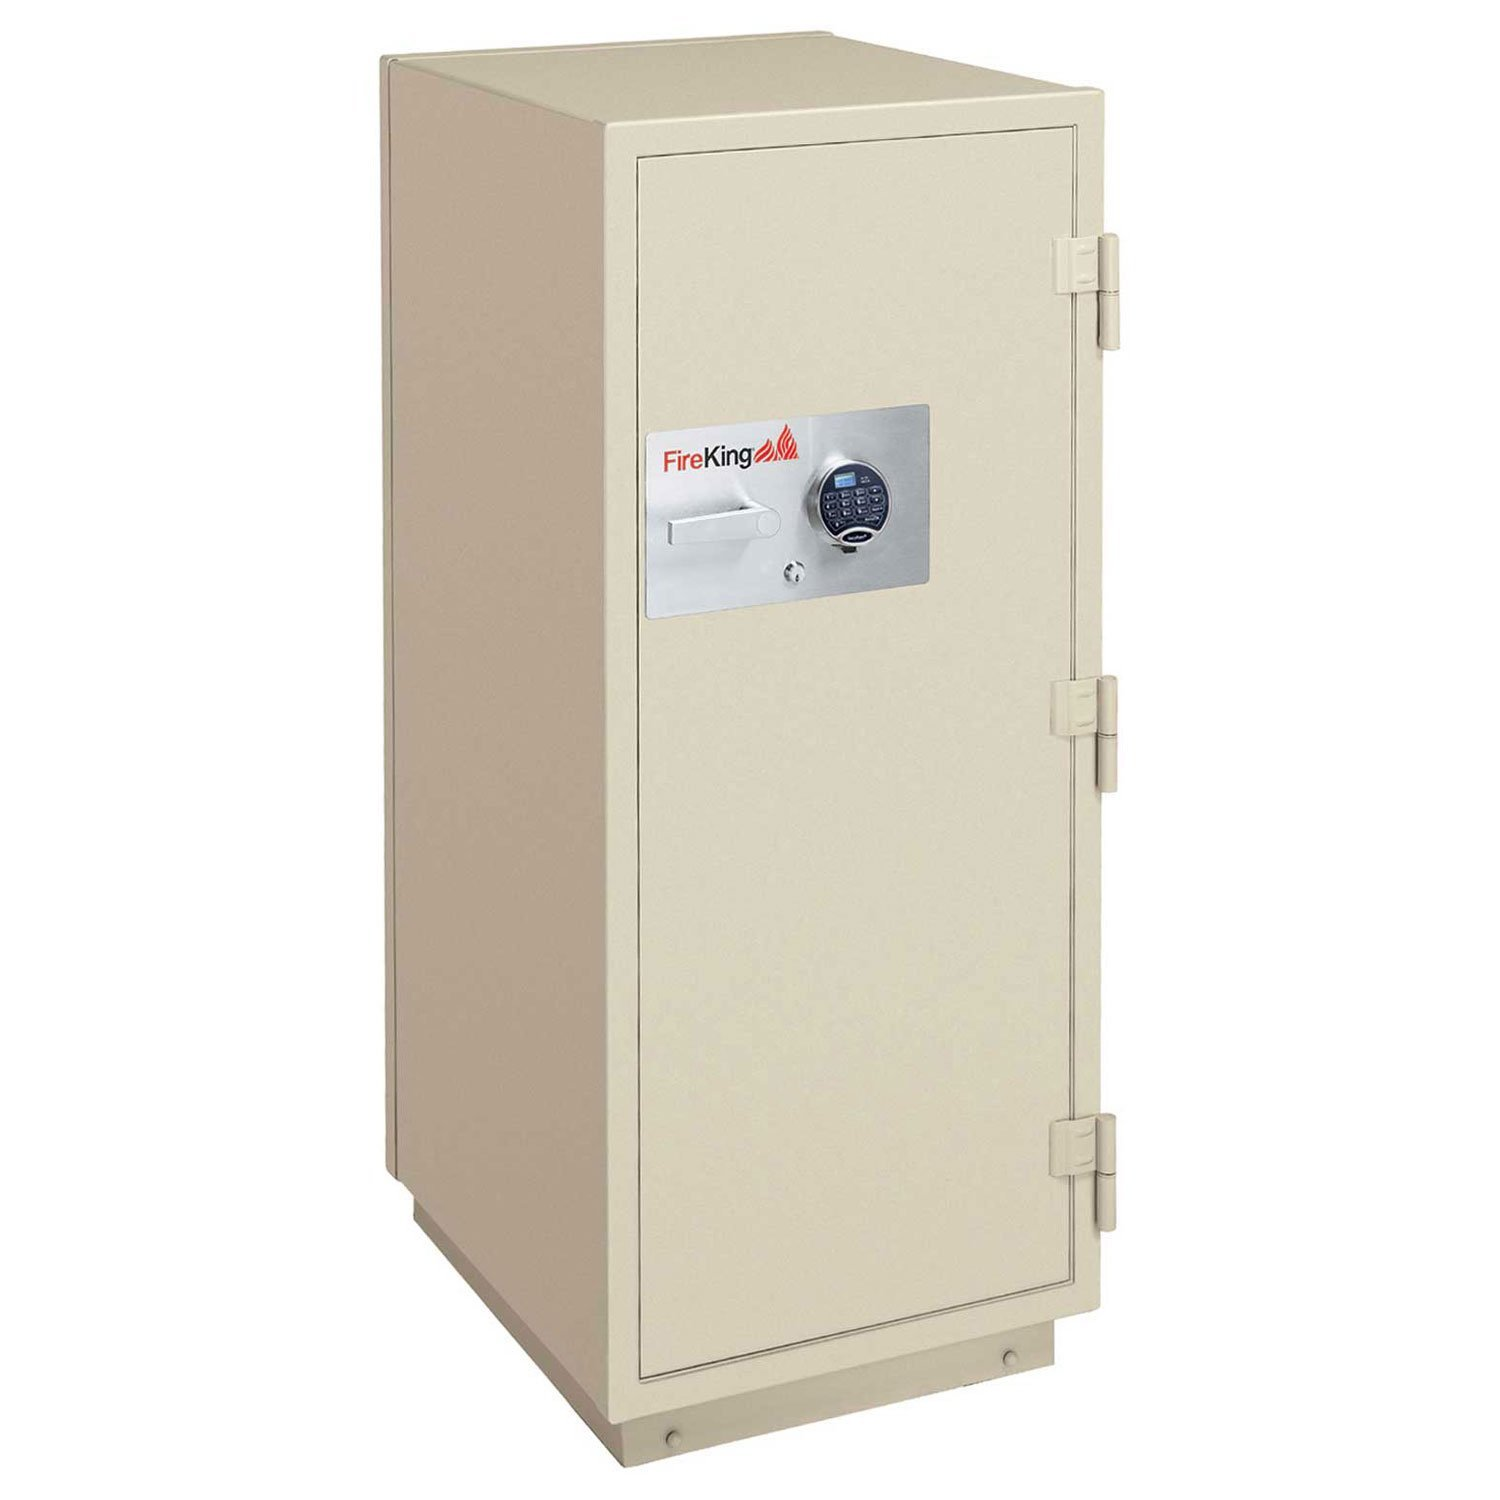 Fireking KR3921-2TA 2-Hour Fire with Impact & Burglary Rated Safe, 49.88'' H x 25.5'' W x 28.88'' D/8.9 cu. ft., Taupe